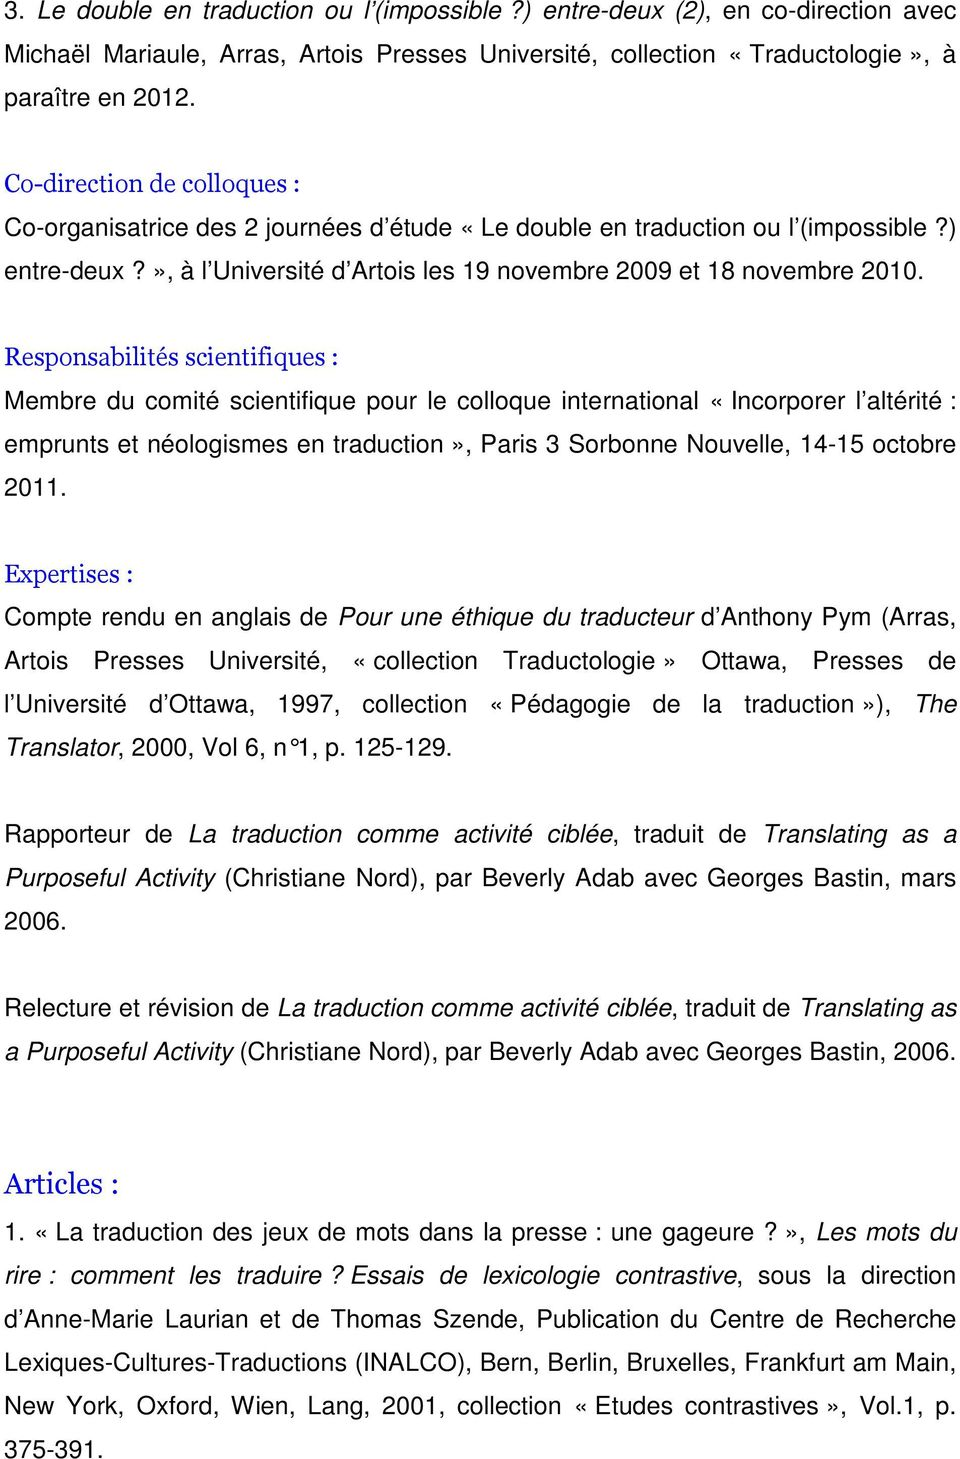 Responsabilités scientifiques : Membre du comité scientifique pour le colloque international «Incorporer l altérité : emprunts et néologismes en traduction», Paris 3 Sorbonne Nouvelle, 14-15 octobre